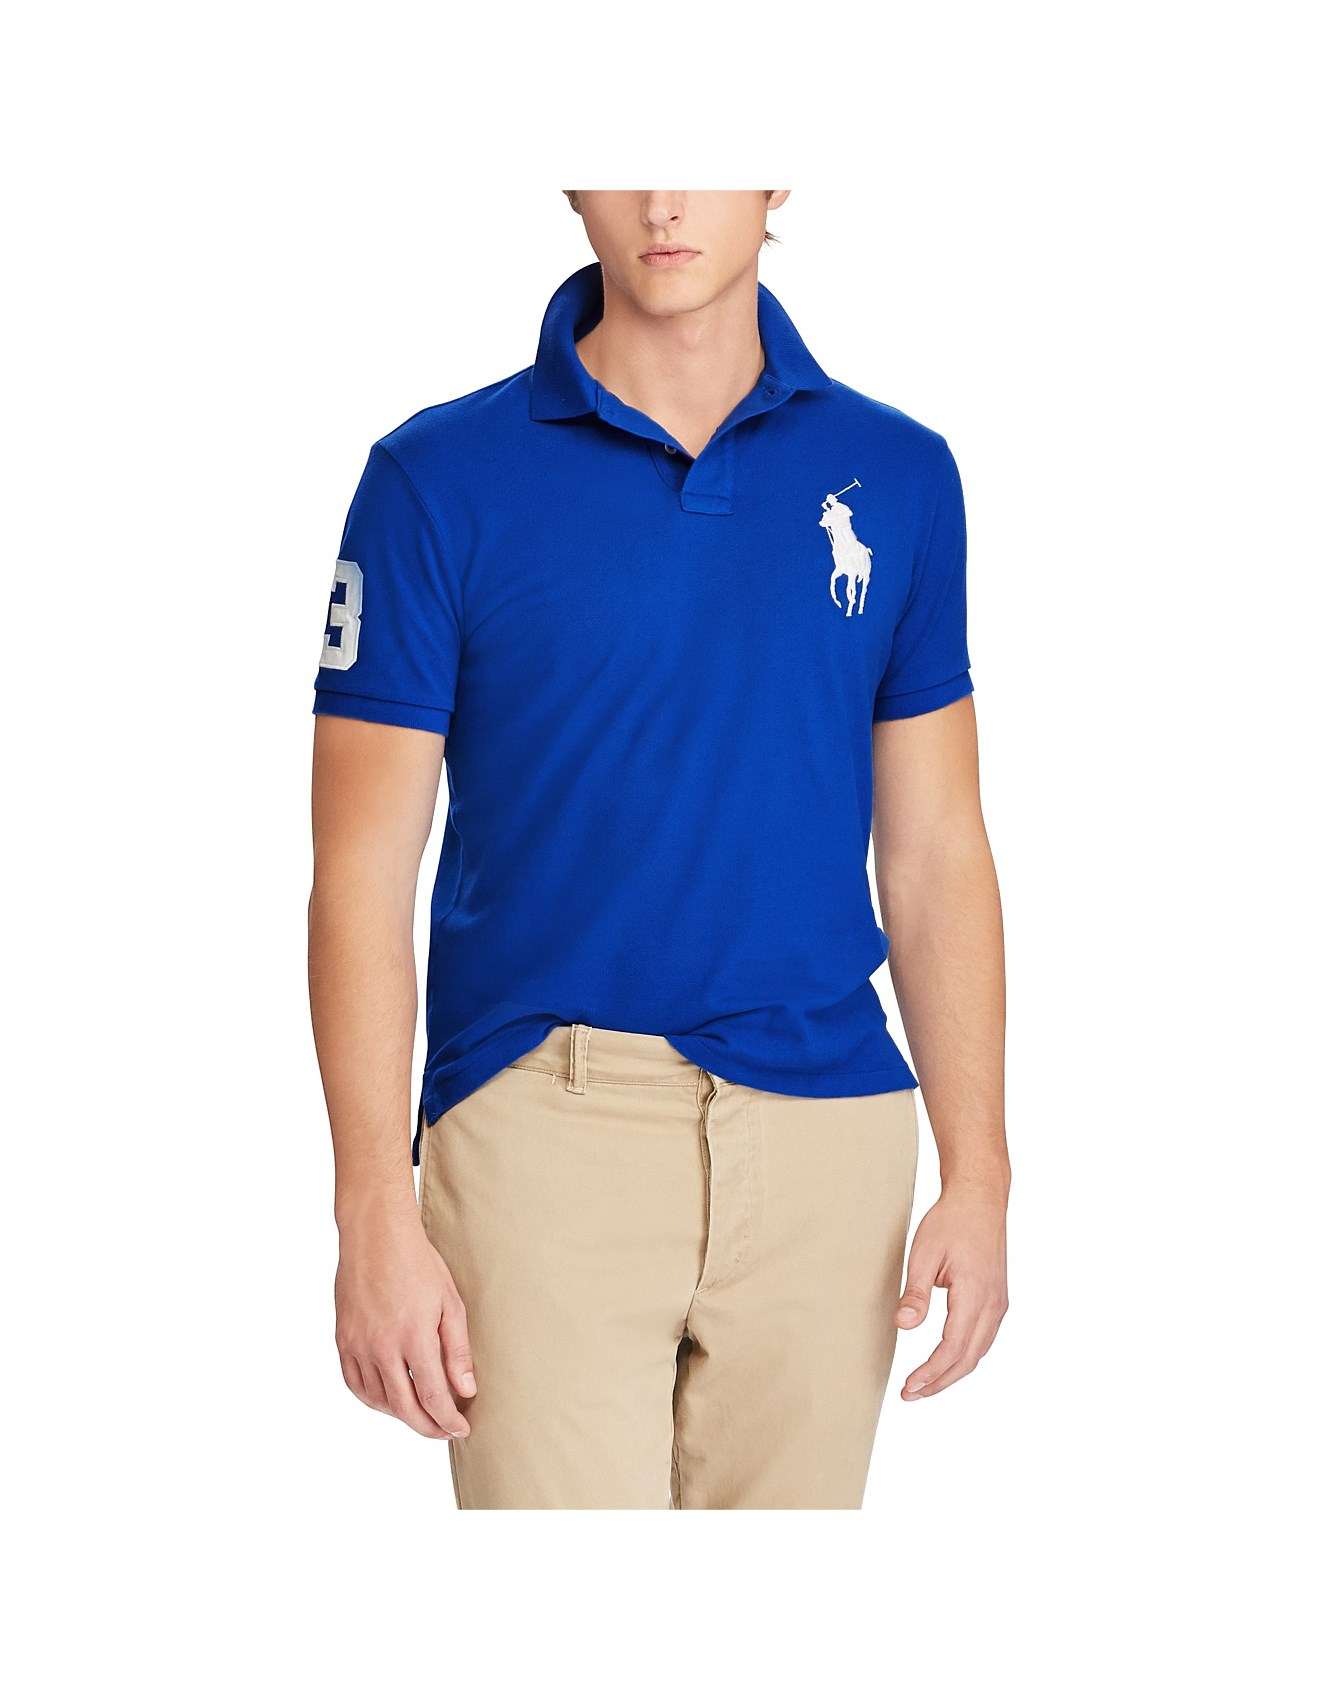 970930e0a84a Men s Custom Slim Fit Mesh Polo